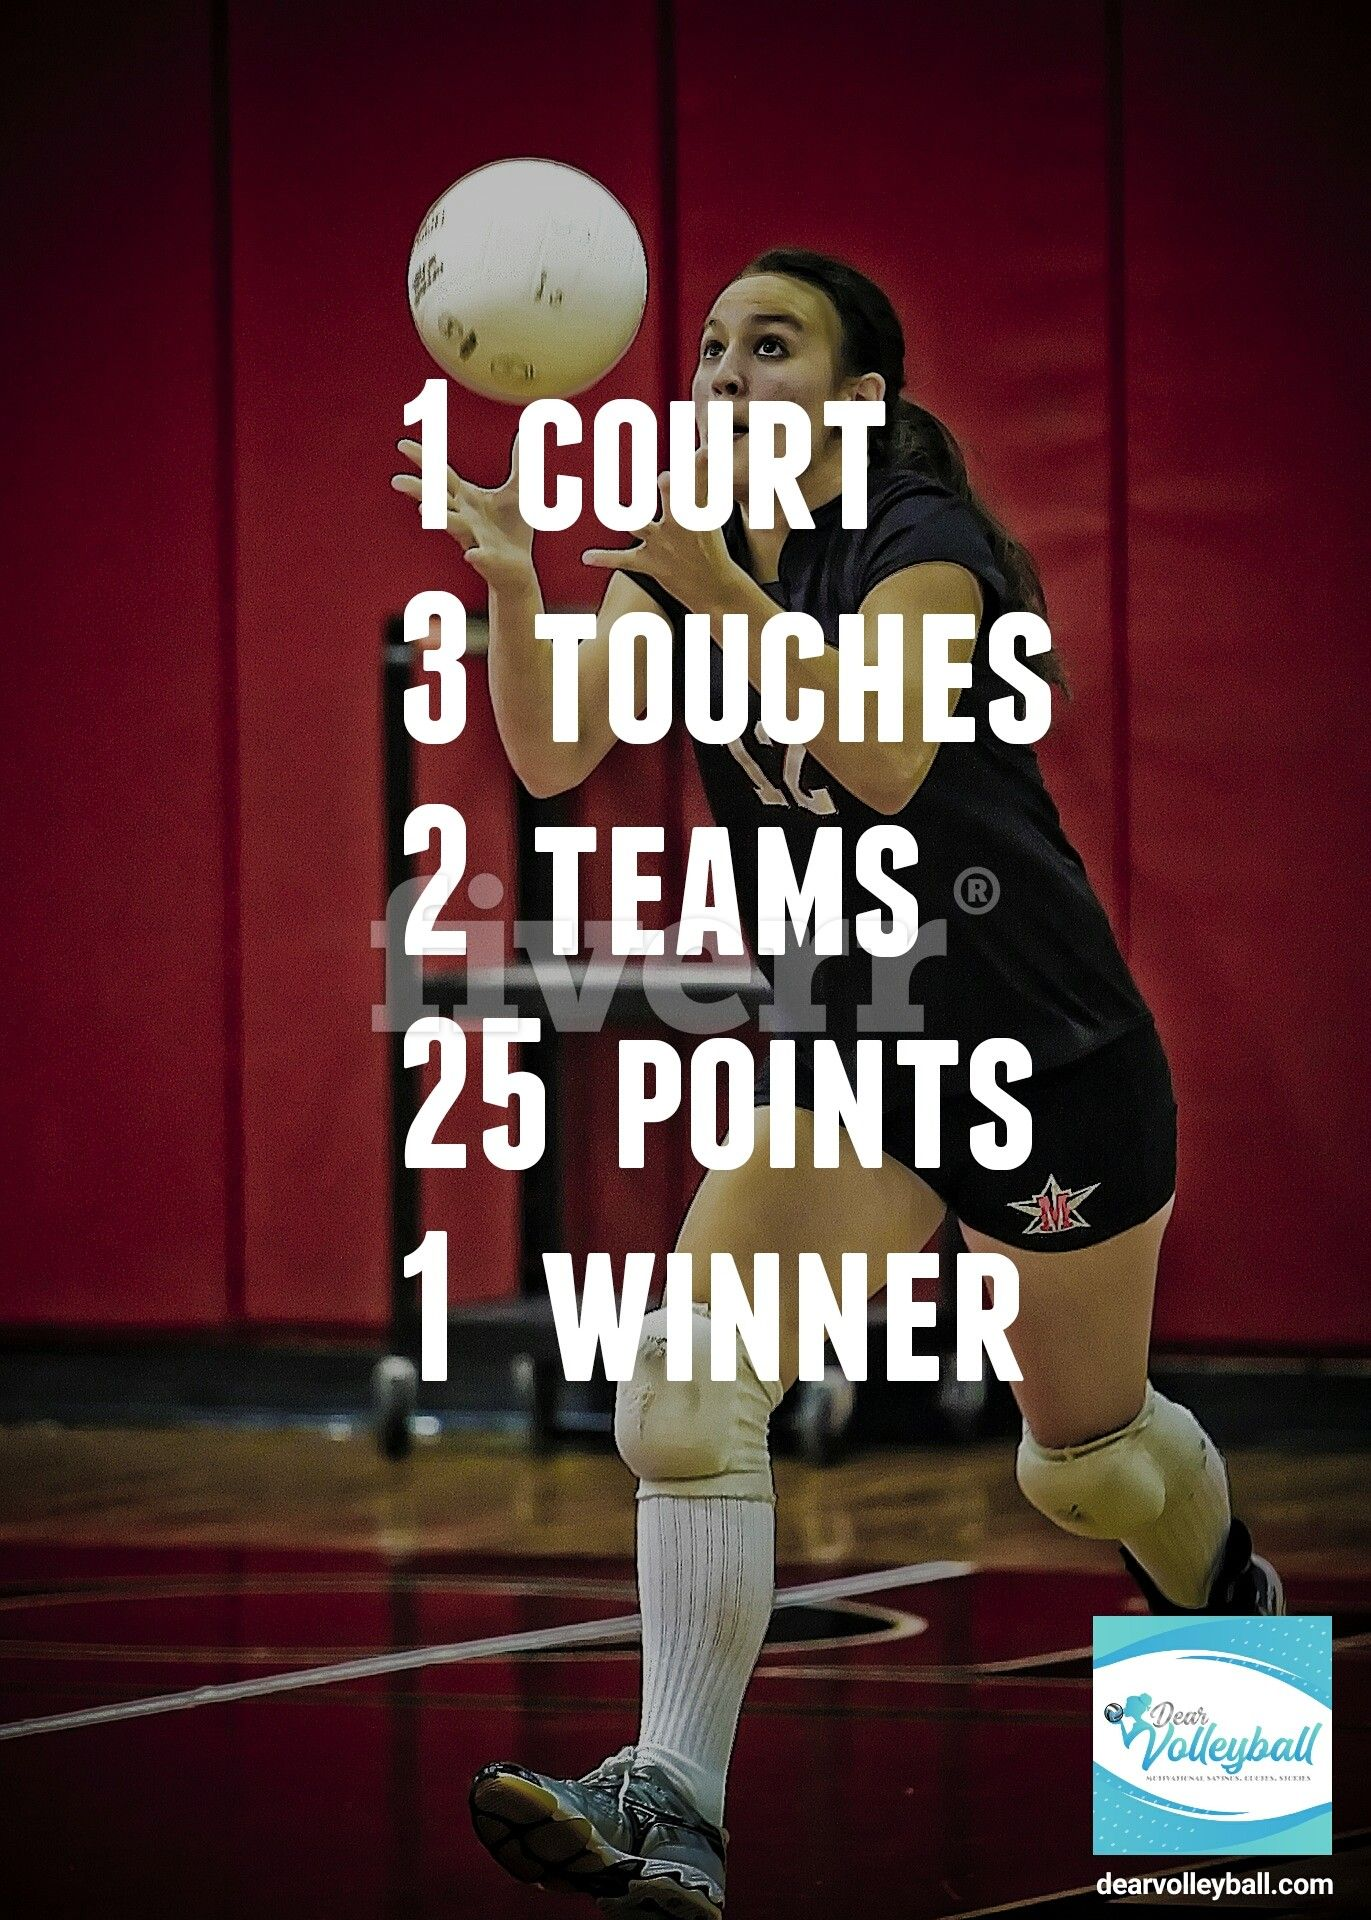 75 Volleyball Motivational Quotes And Images That Inspire Success Motivational Volleyball Quotes Inspirational Volleyball Quotes Volleyball Quotes